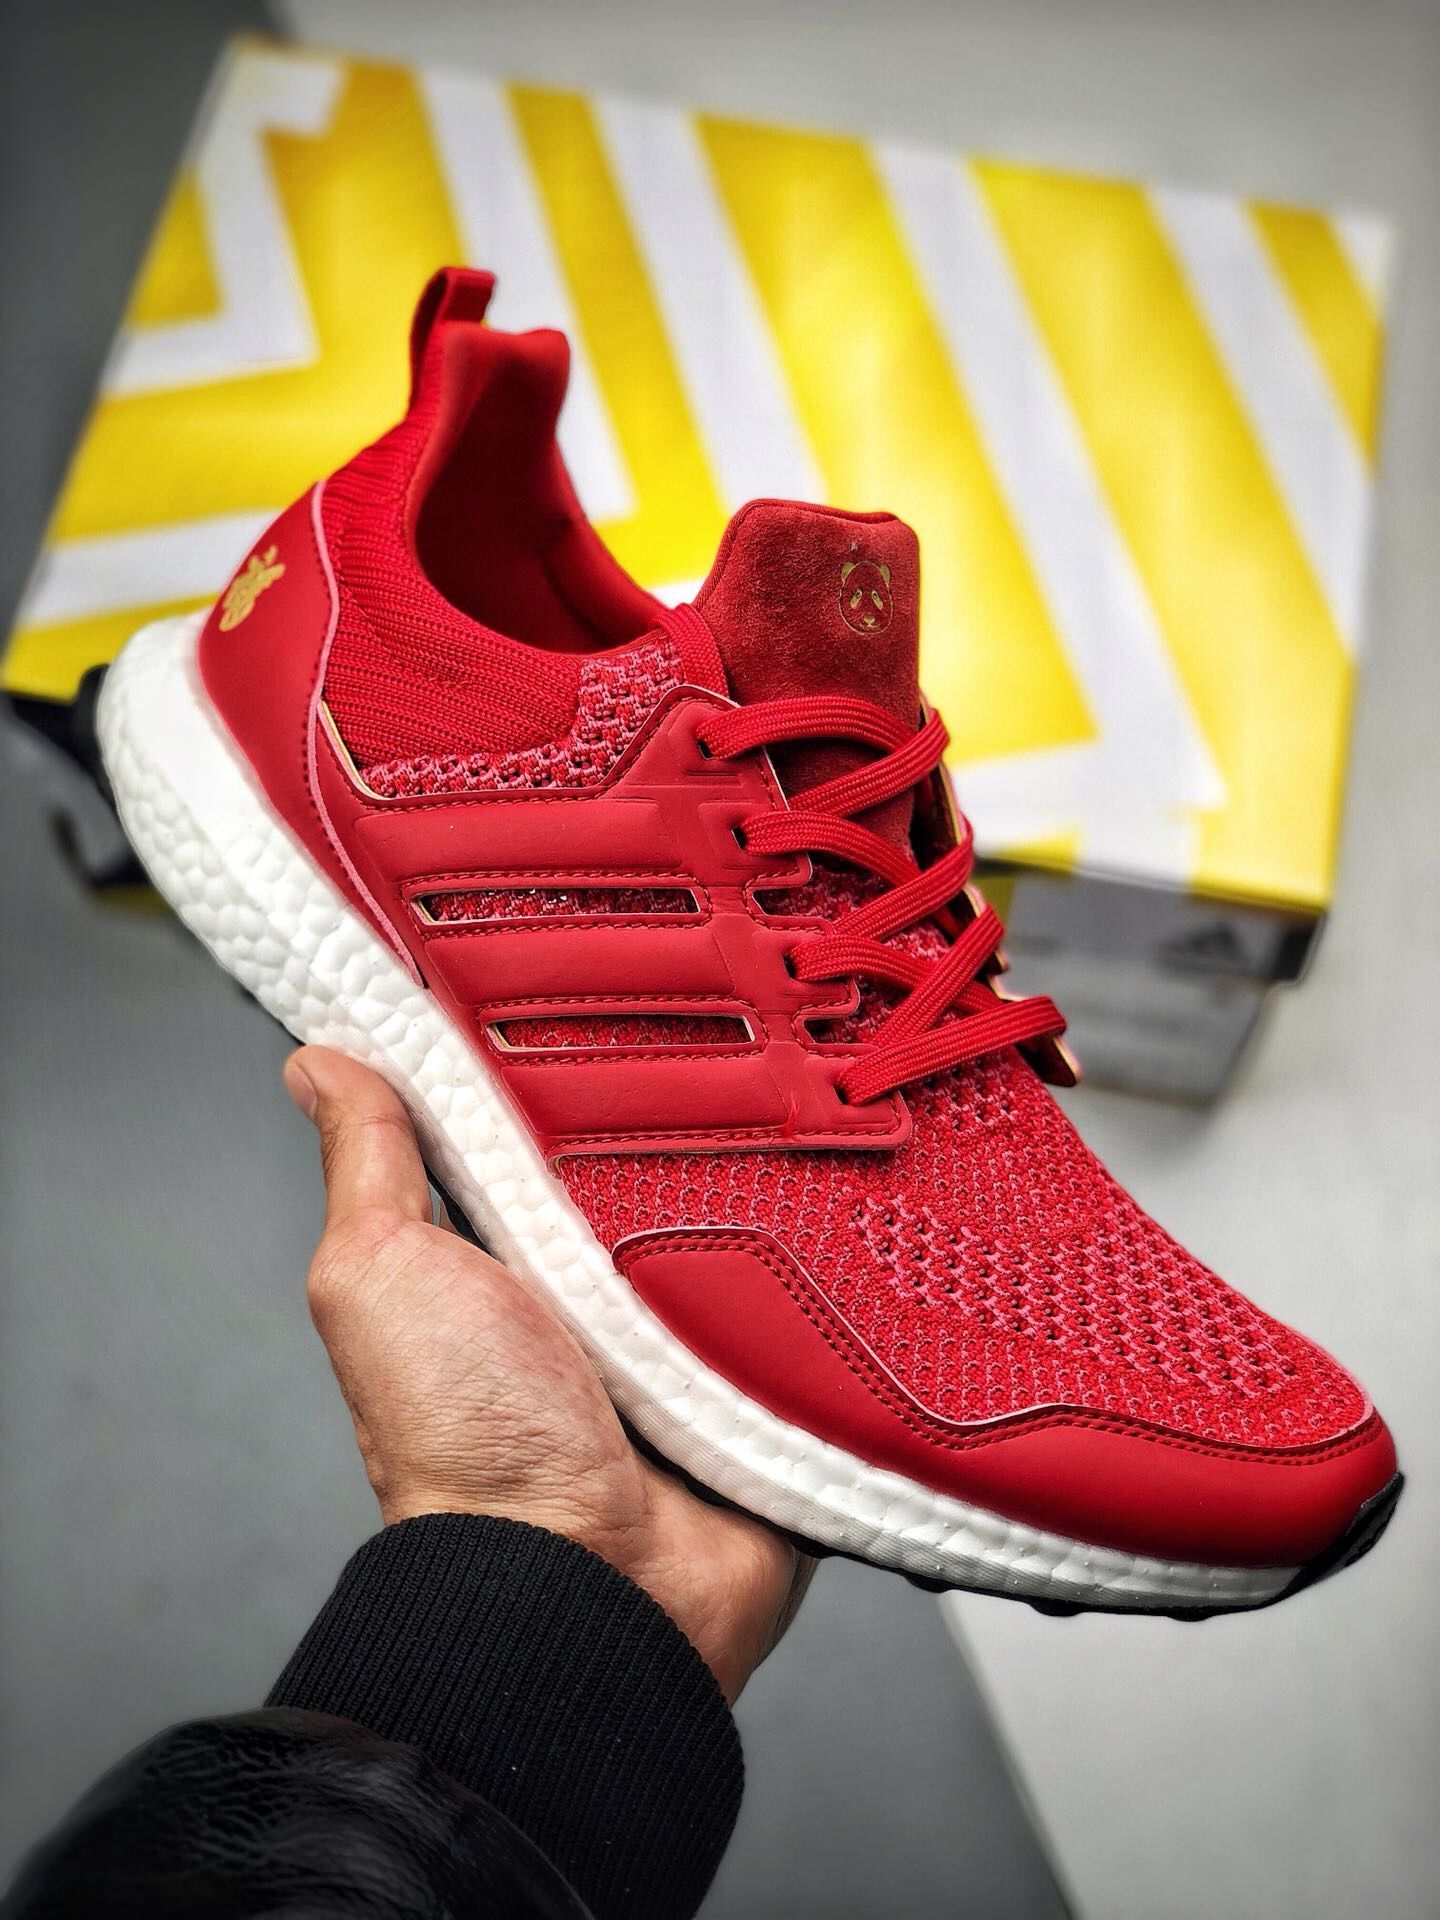 check out a6d53 10c82 Adidas Ultra Boost 4.0 CNY F36426 | Adidas UltraBoost in ...